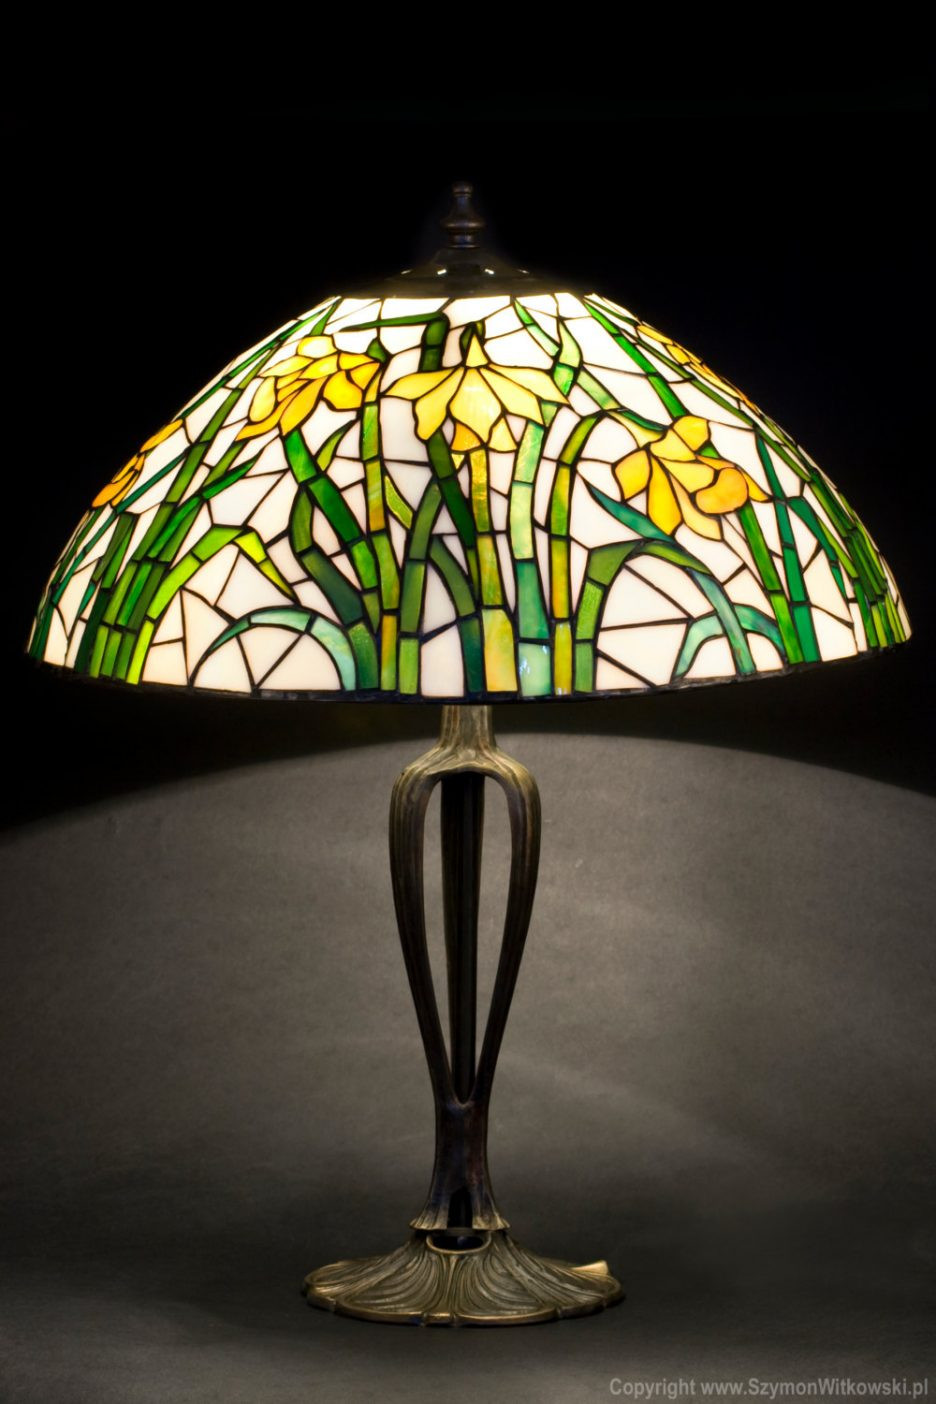 Antique Tiffany Lamps Awesome Table Lamps Impressive Table Lamp Shades Ly Clear Of Amazing 47 Photos Antique Tiffany Lamps